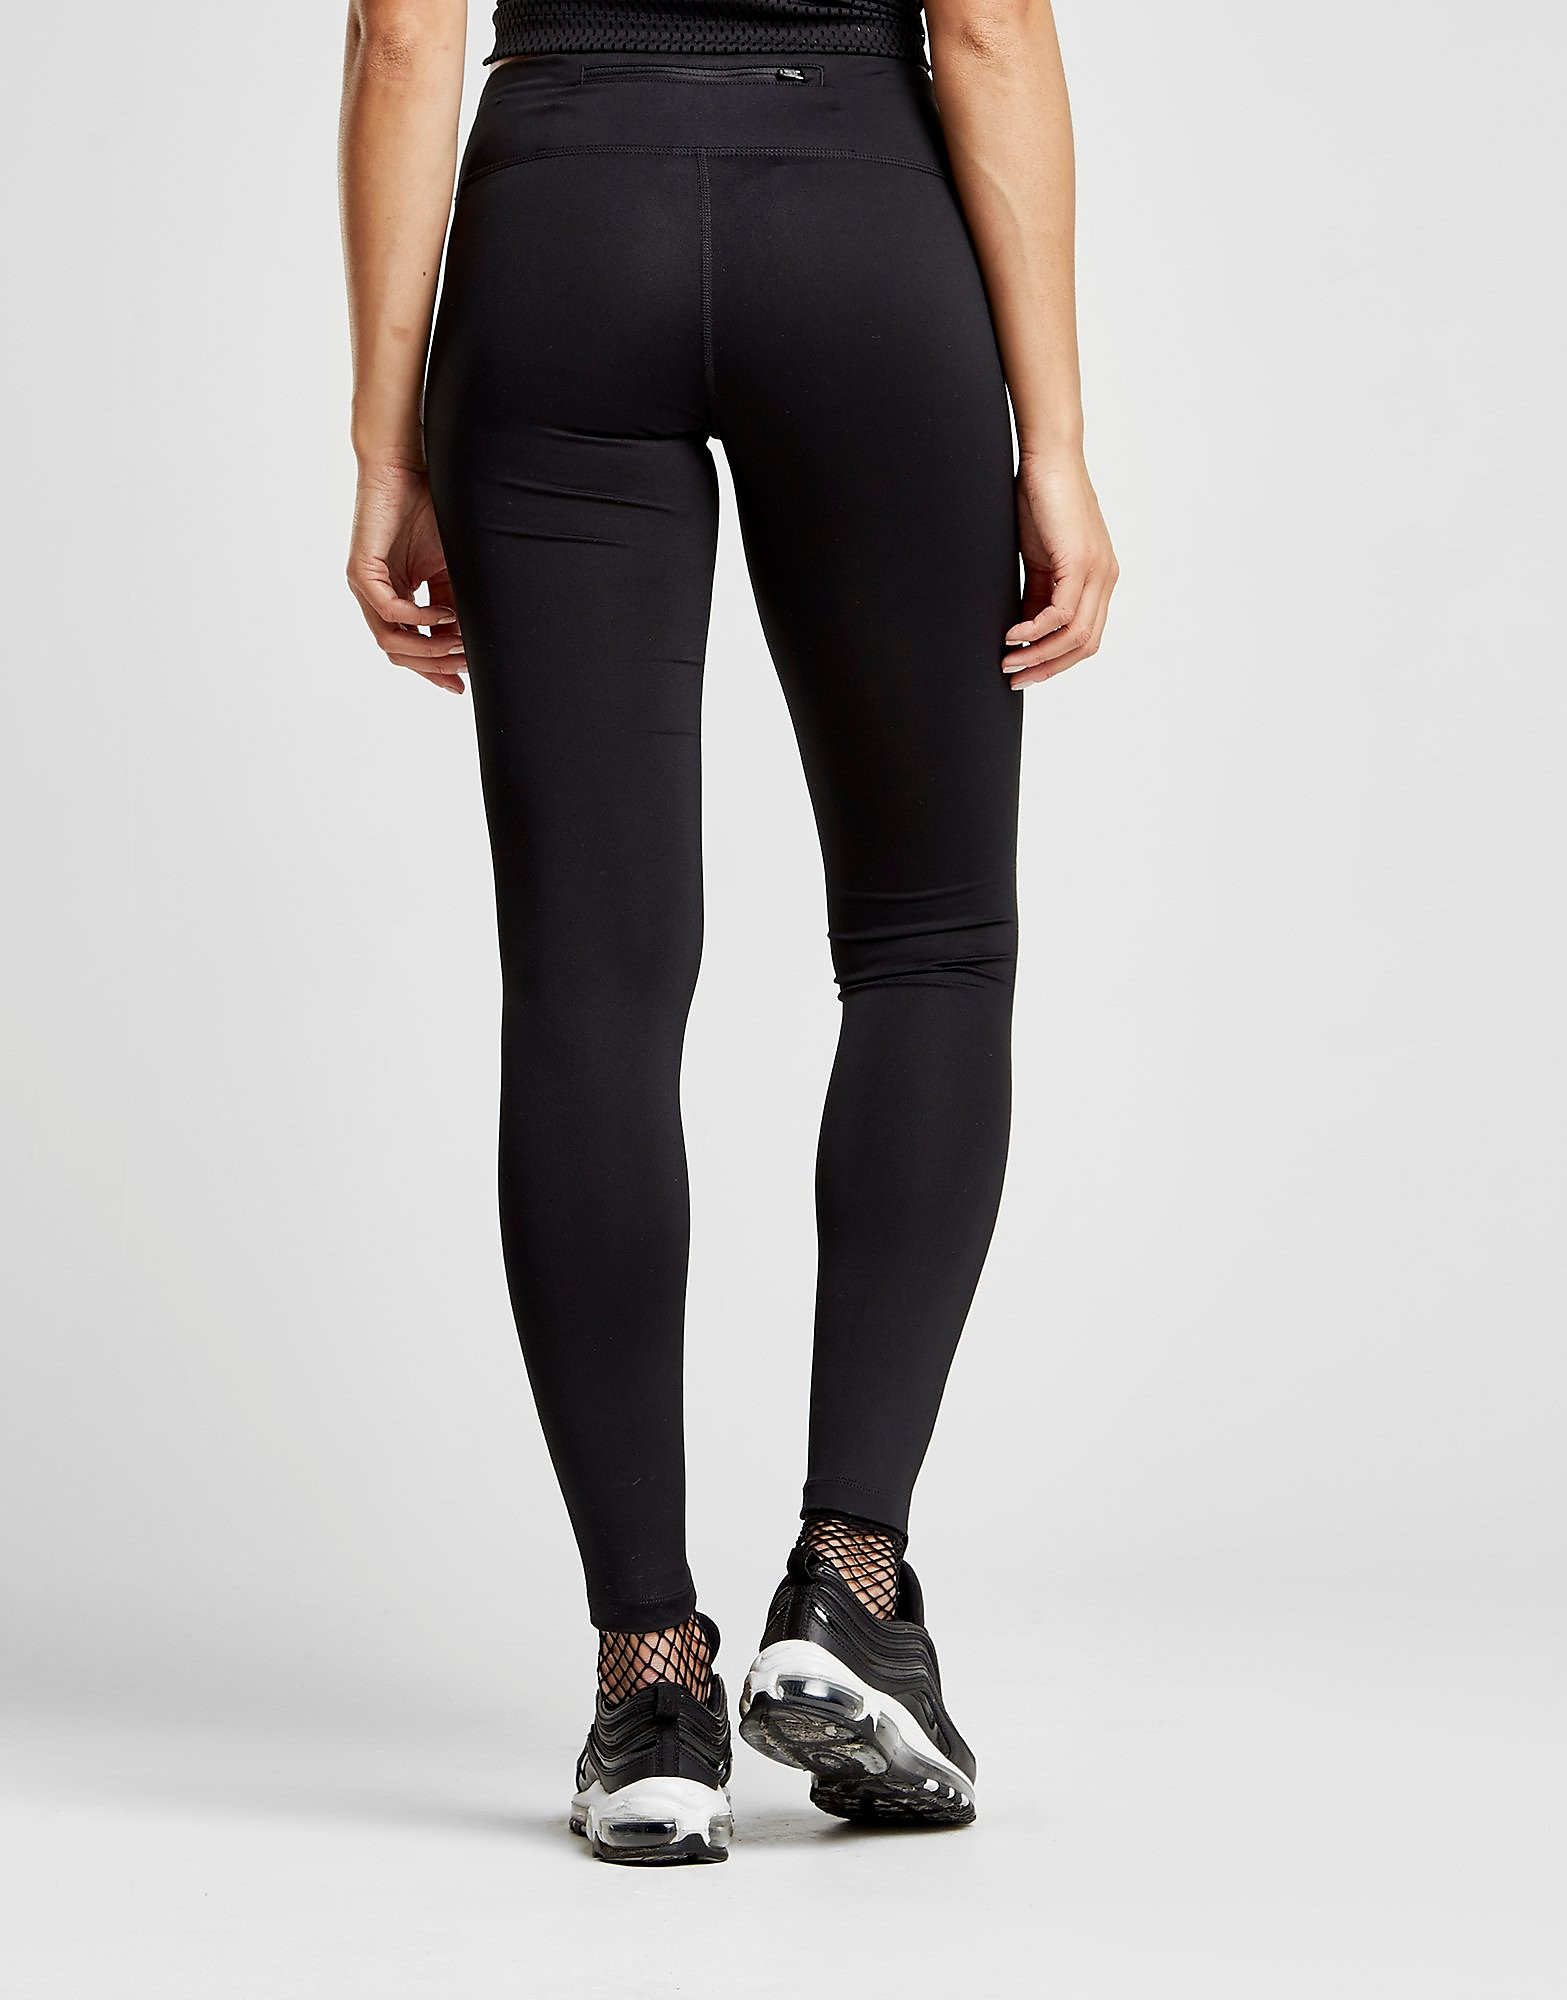 Nike Metallic Running Tights